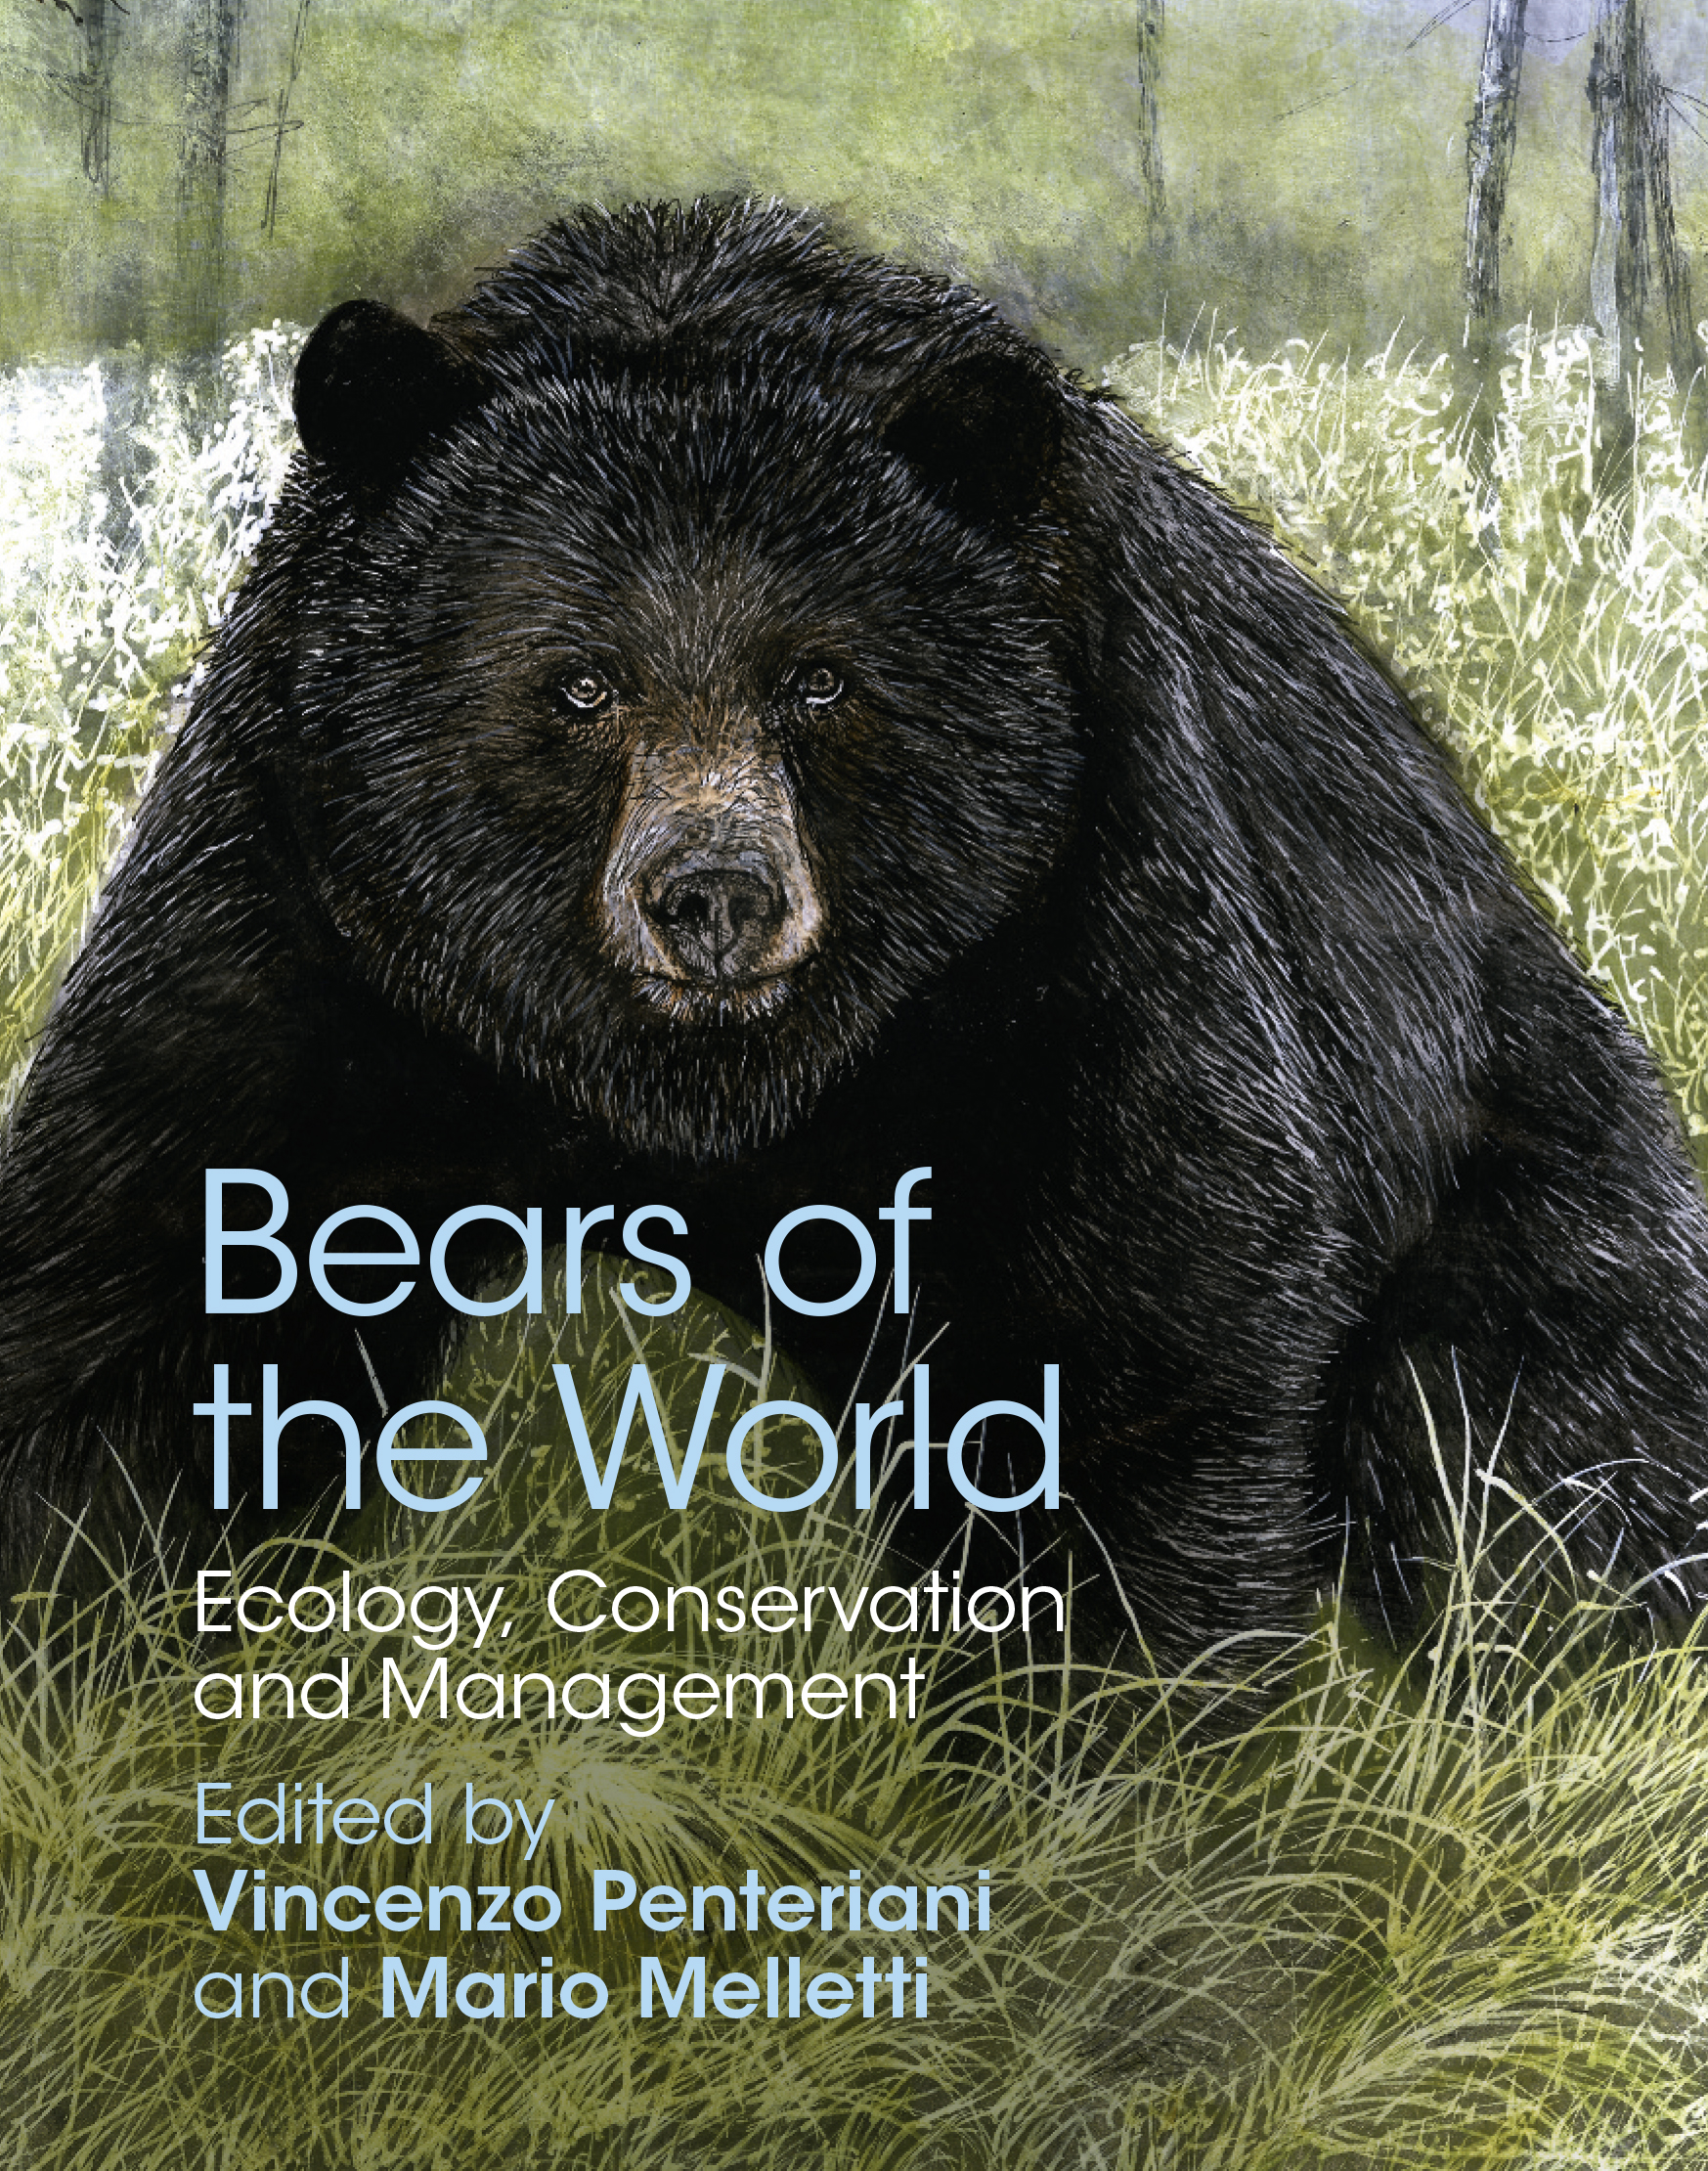 COMING SOON: Bears of the World